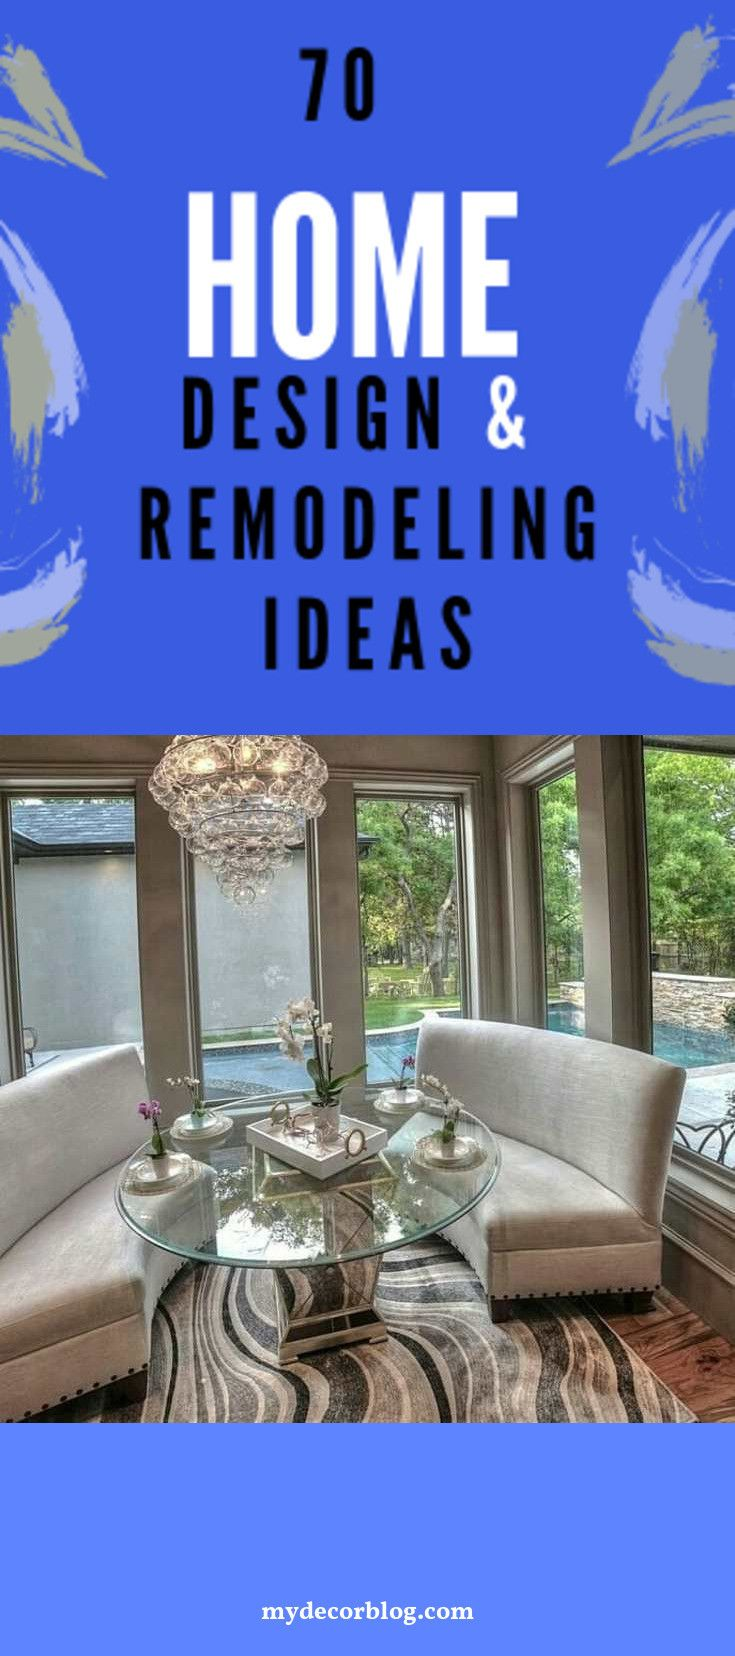 DIY Renters Decor Ideas – DIY Bedhome Decor Idea Canopy – Cool DIY Projects for Those Renting Aparments